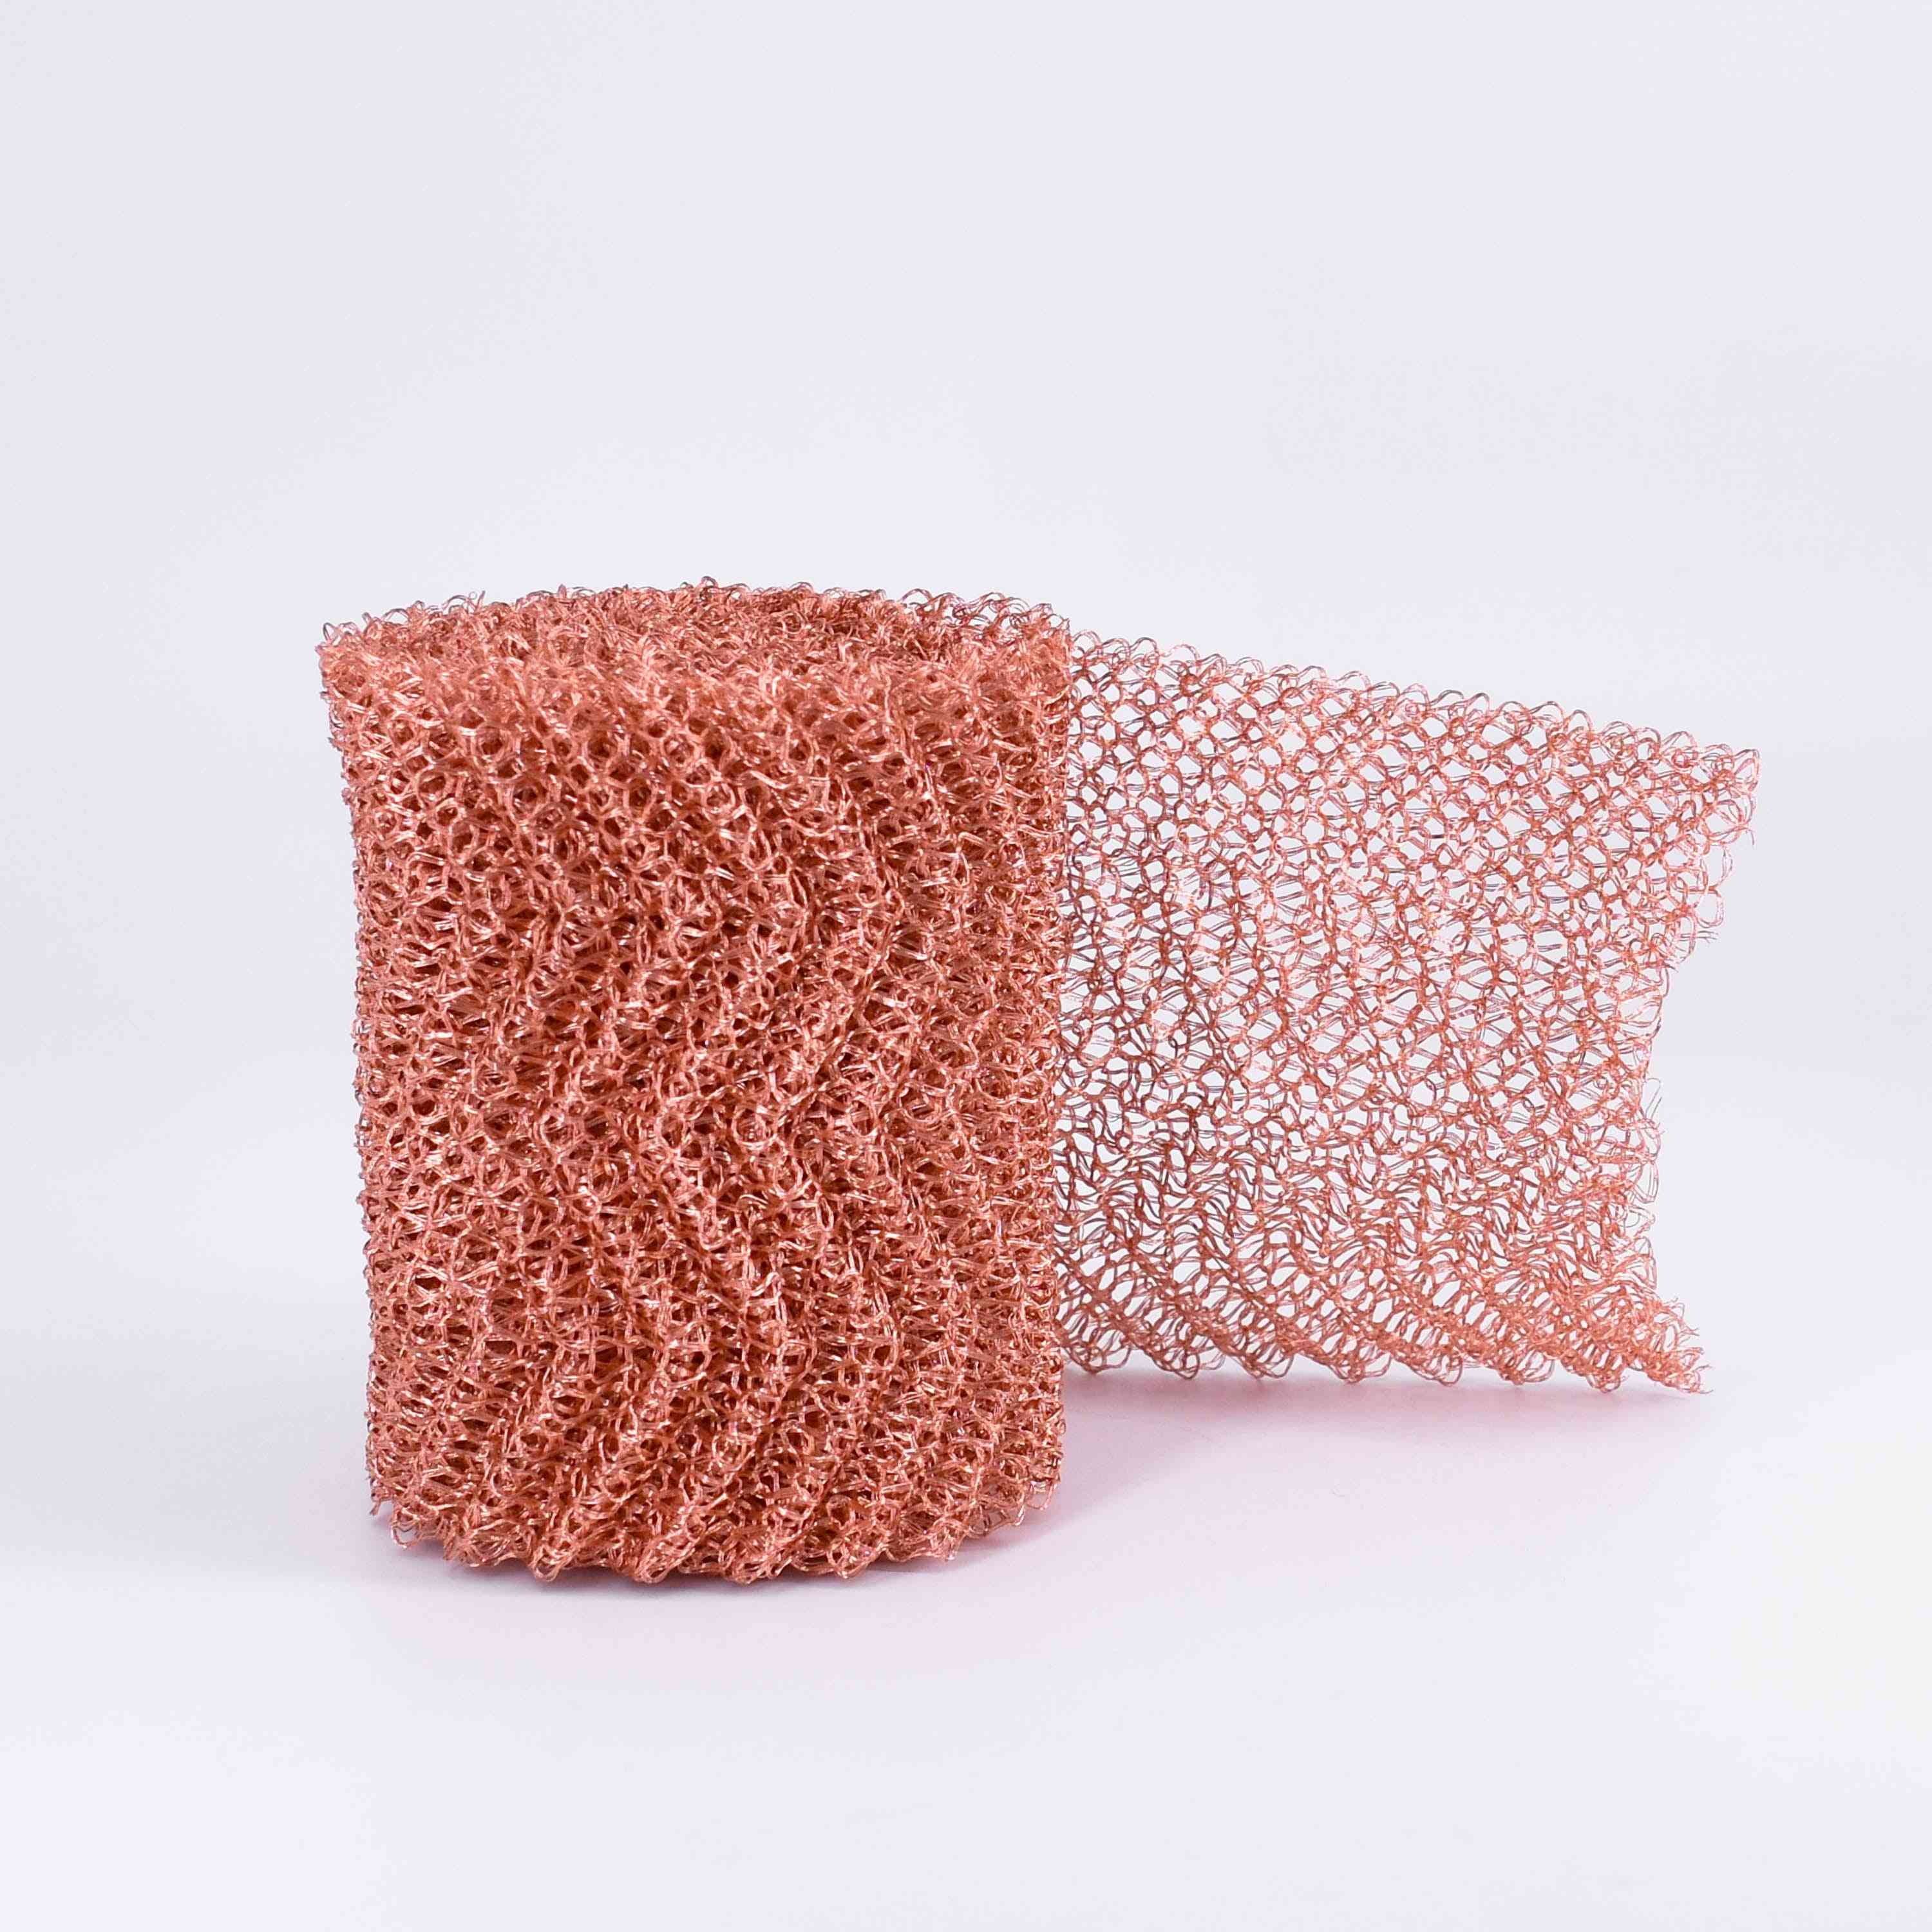 Pure Copper Mesh Woven Filter Sanitary Food Grade For Distillation Moonshine Home Brew Beer